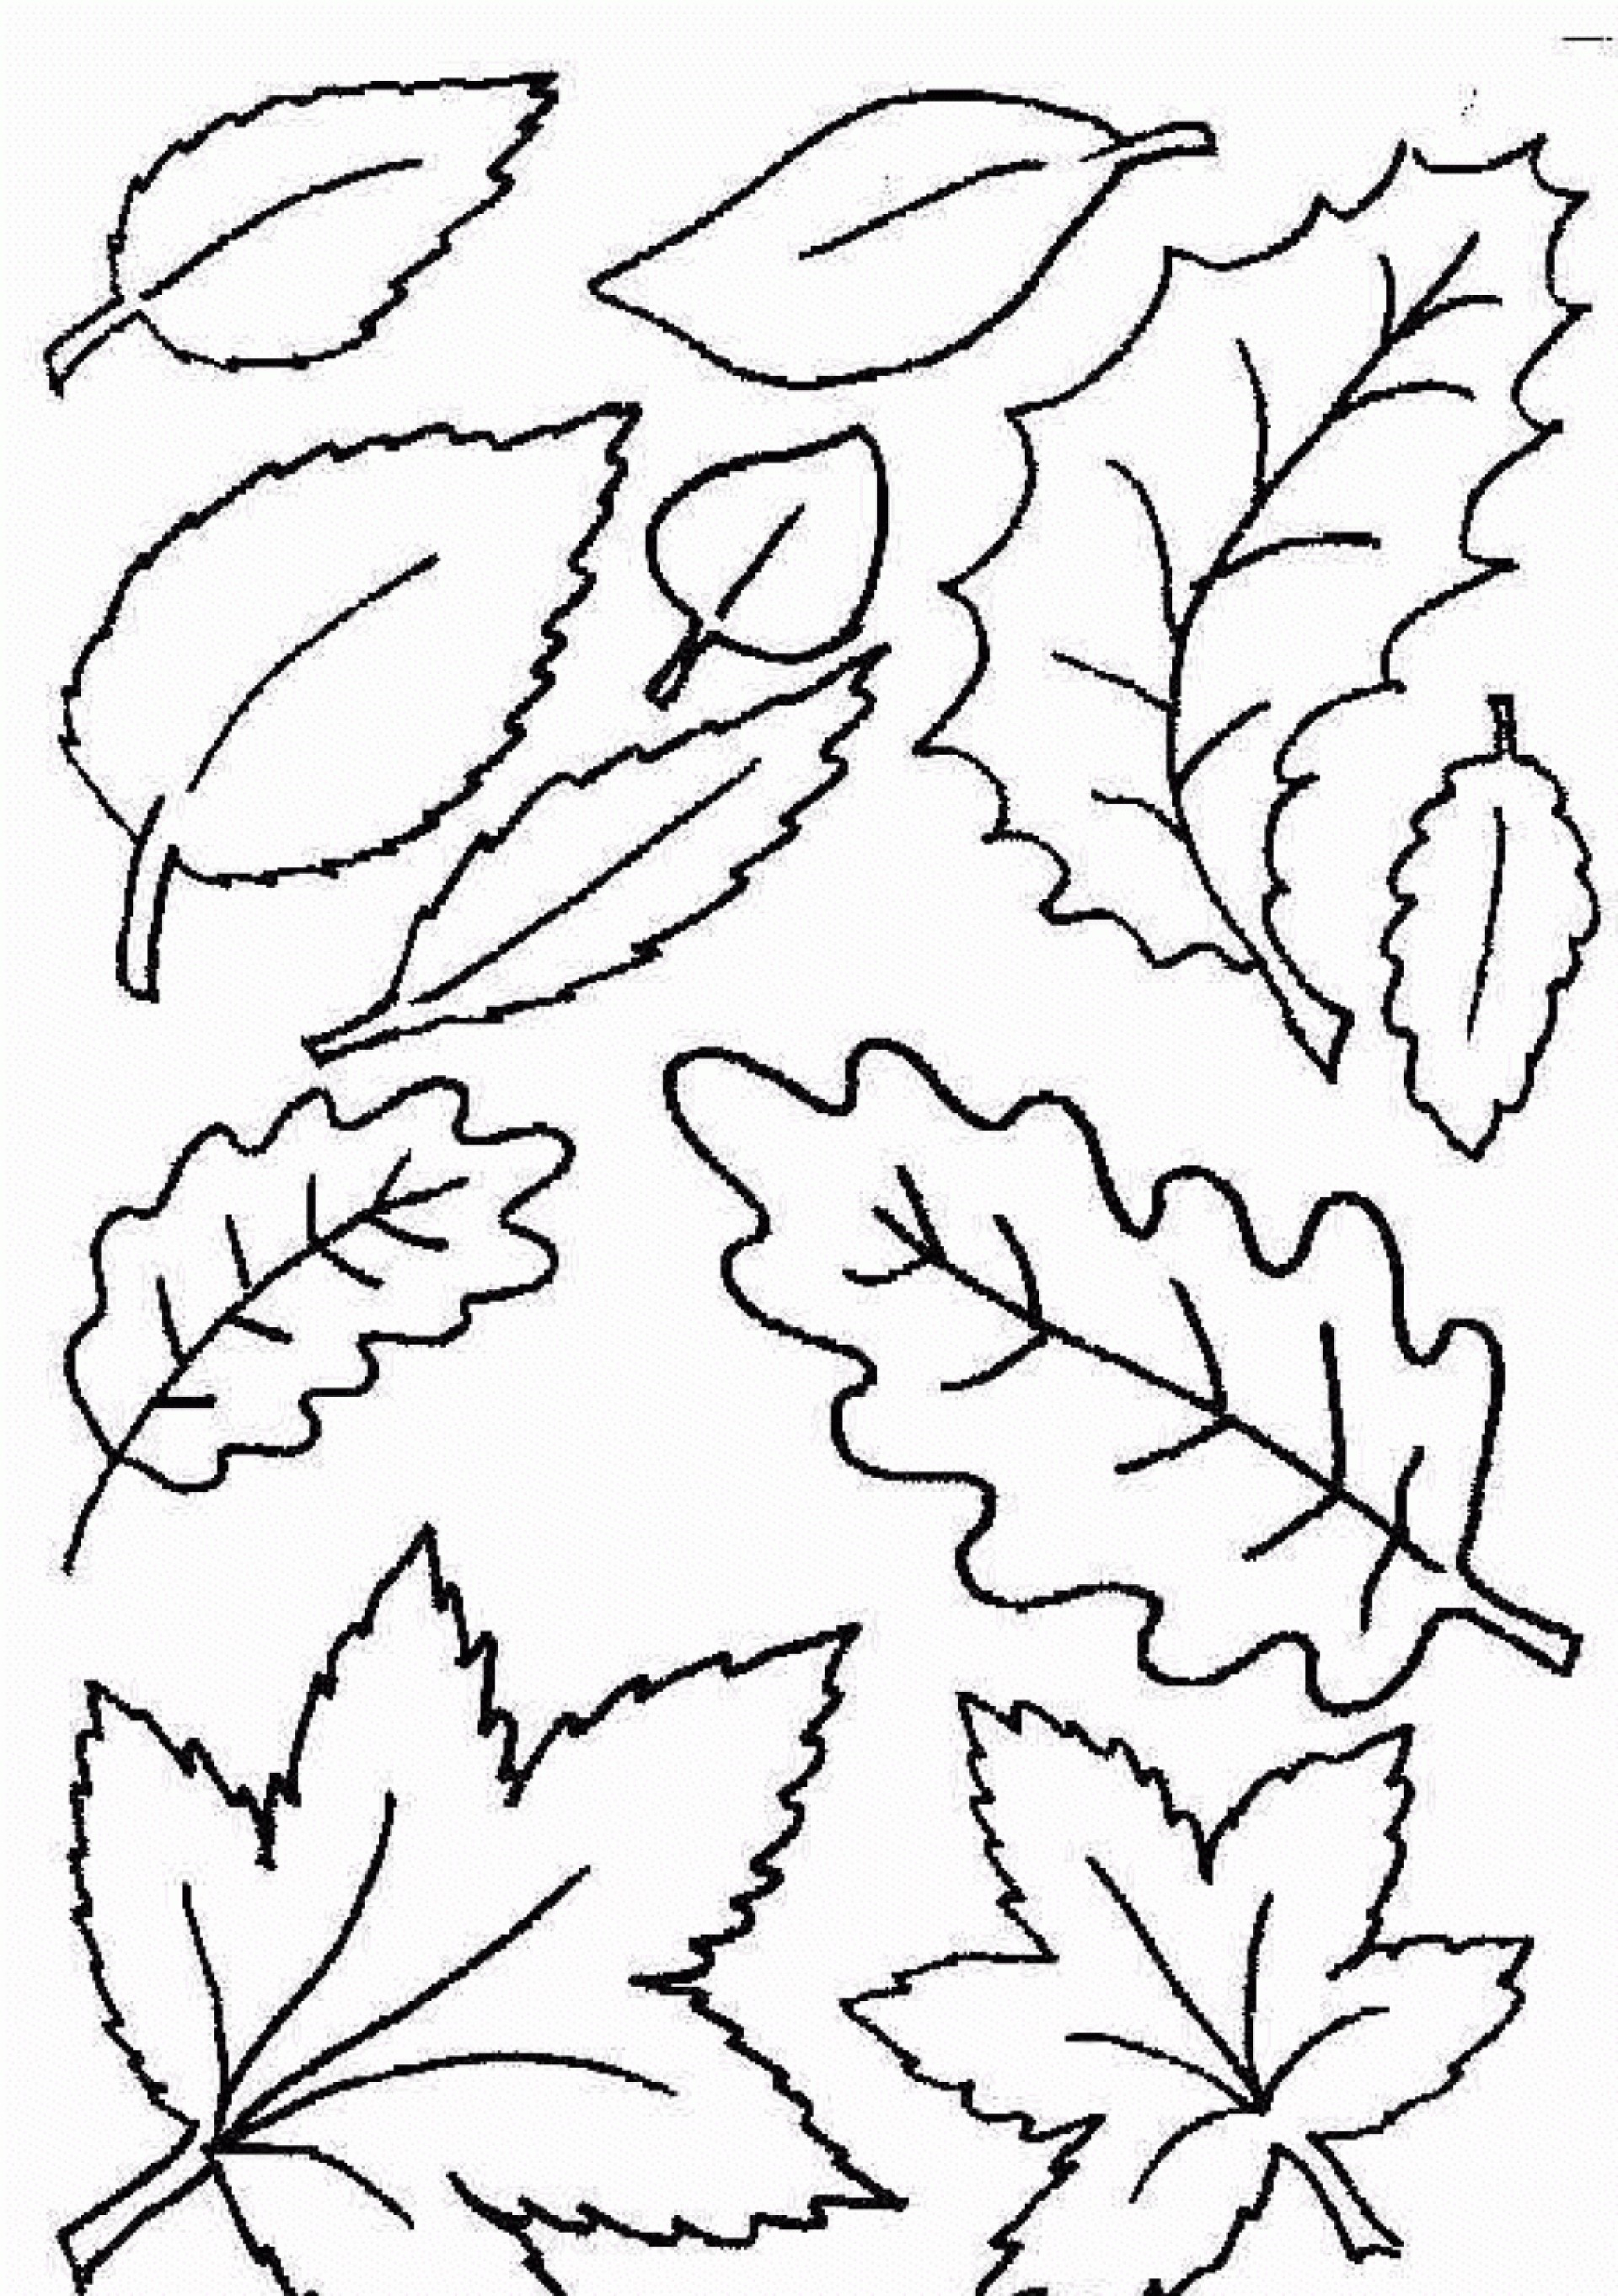 028 Template Ideas Free Printable Leaf Best Fall Leaves Coloring - Free Printable Leaf Coloring Pages